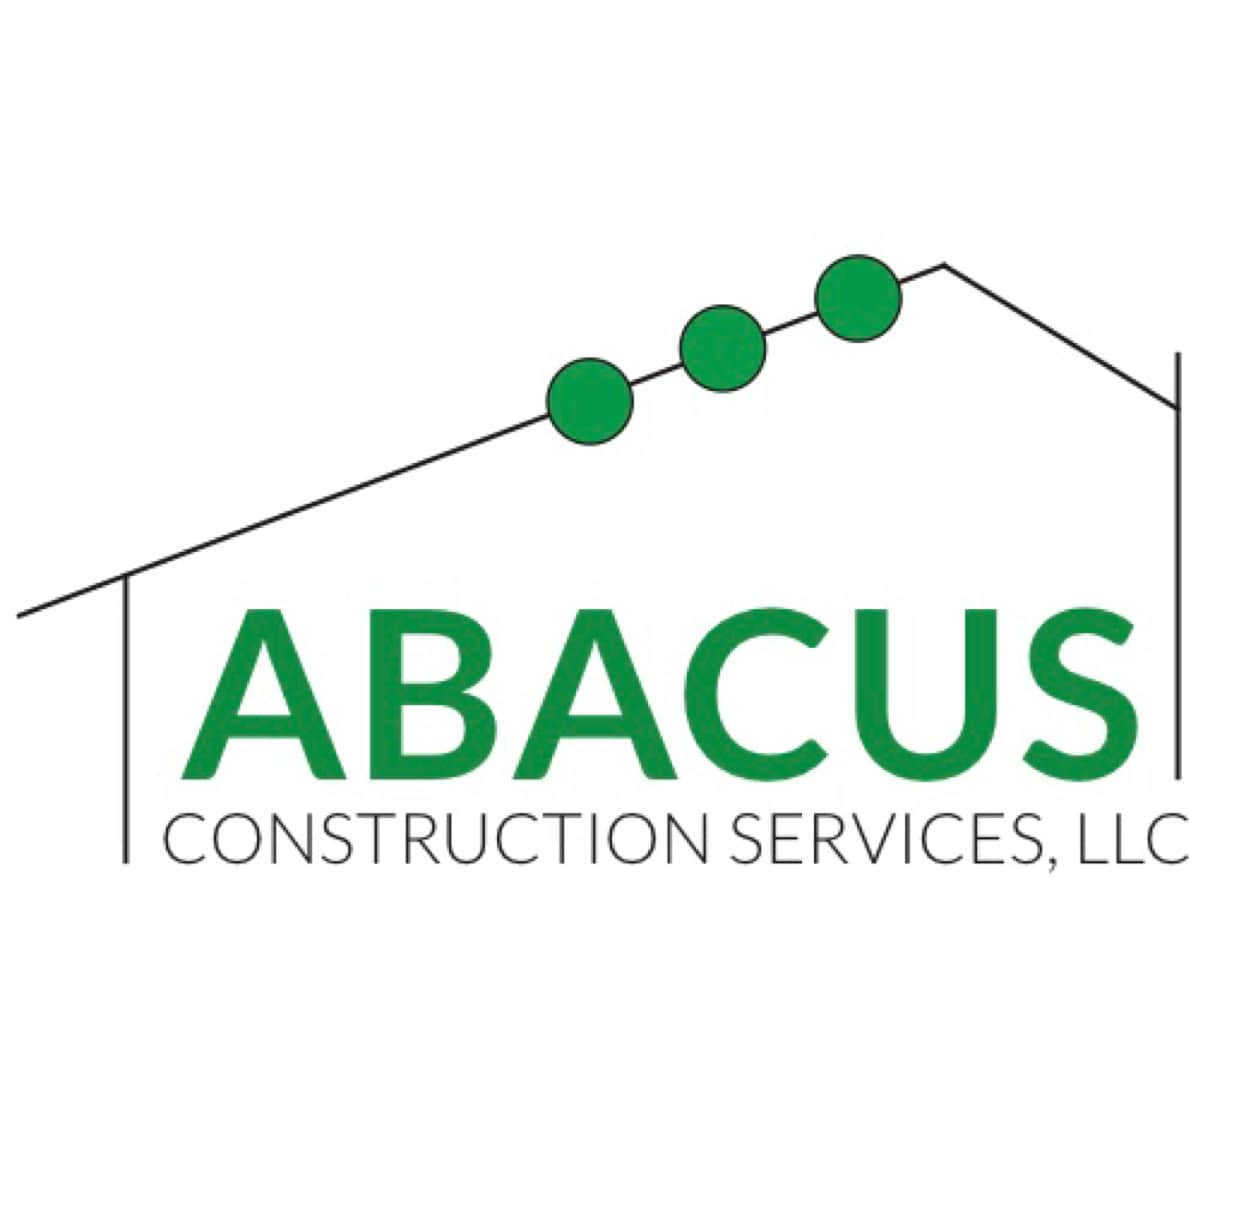 Abacus Construction Services, LLC